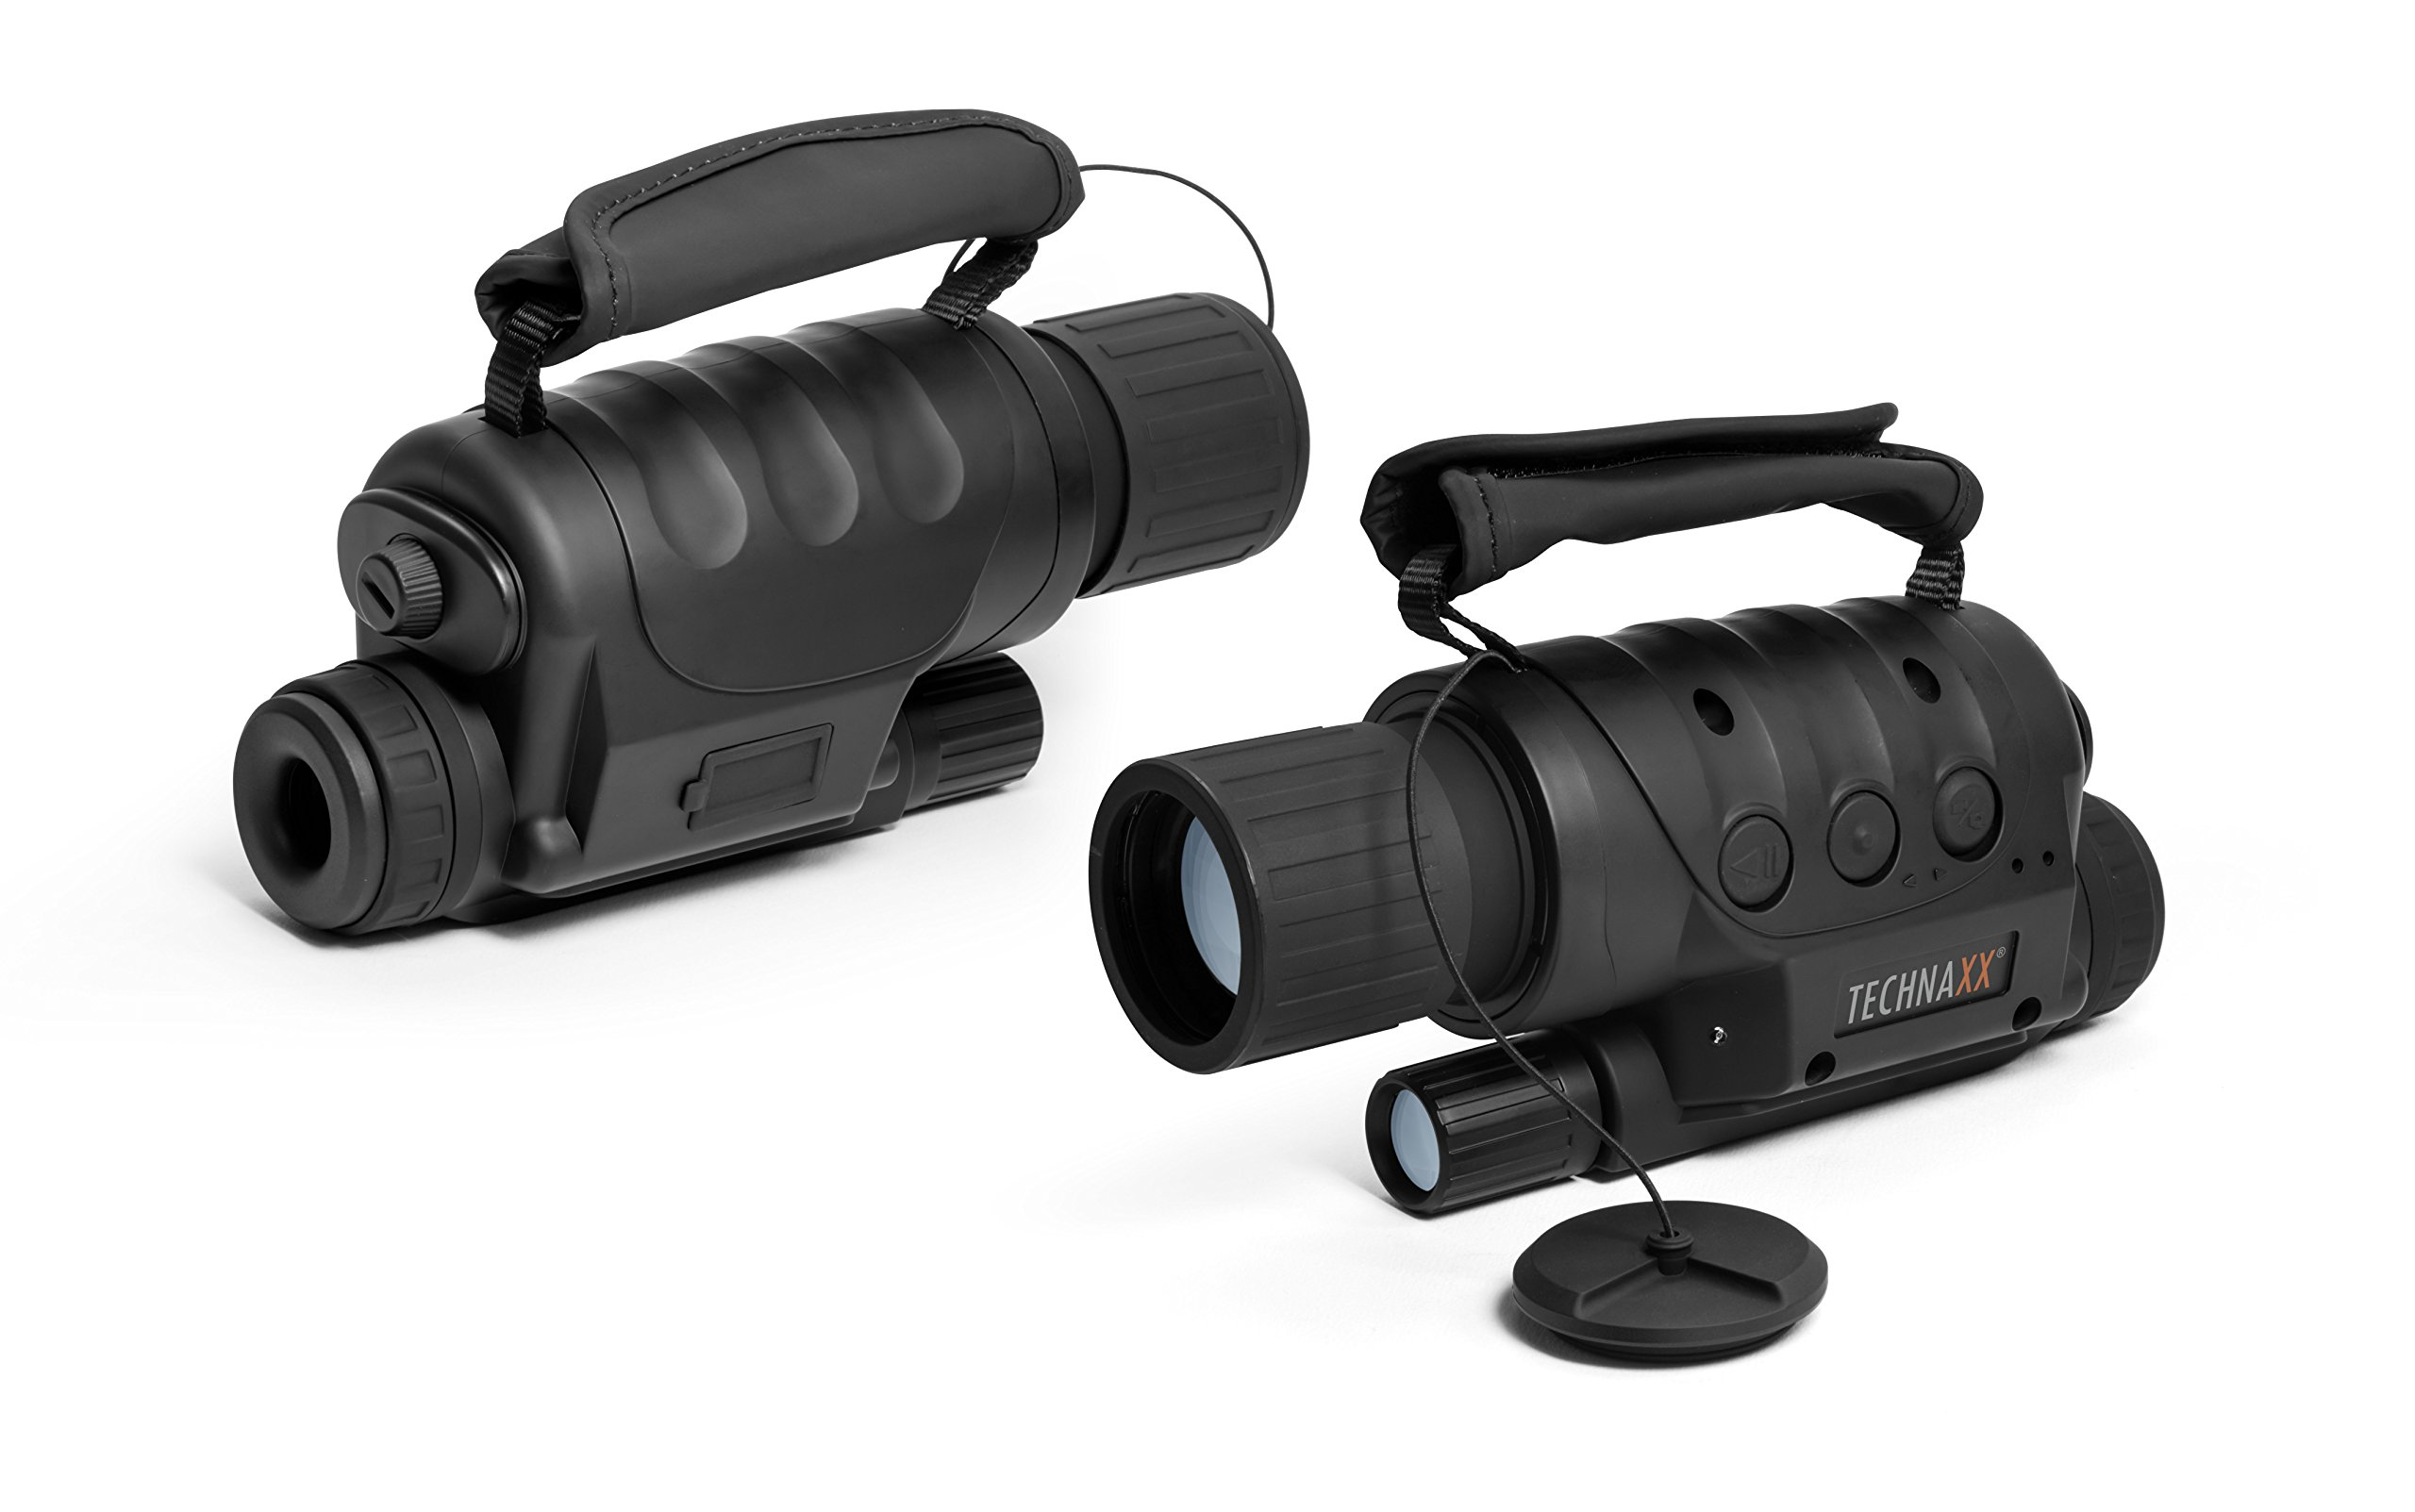 Technaxx 4560TX 73with Camera Function, Night Vision 4x Zoom, Black